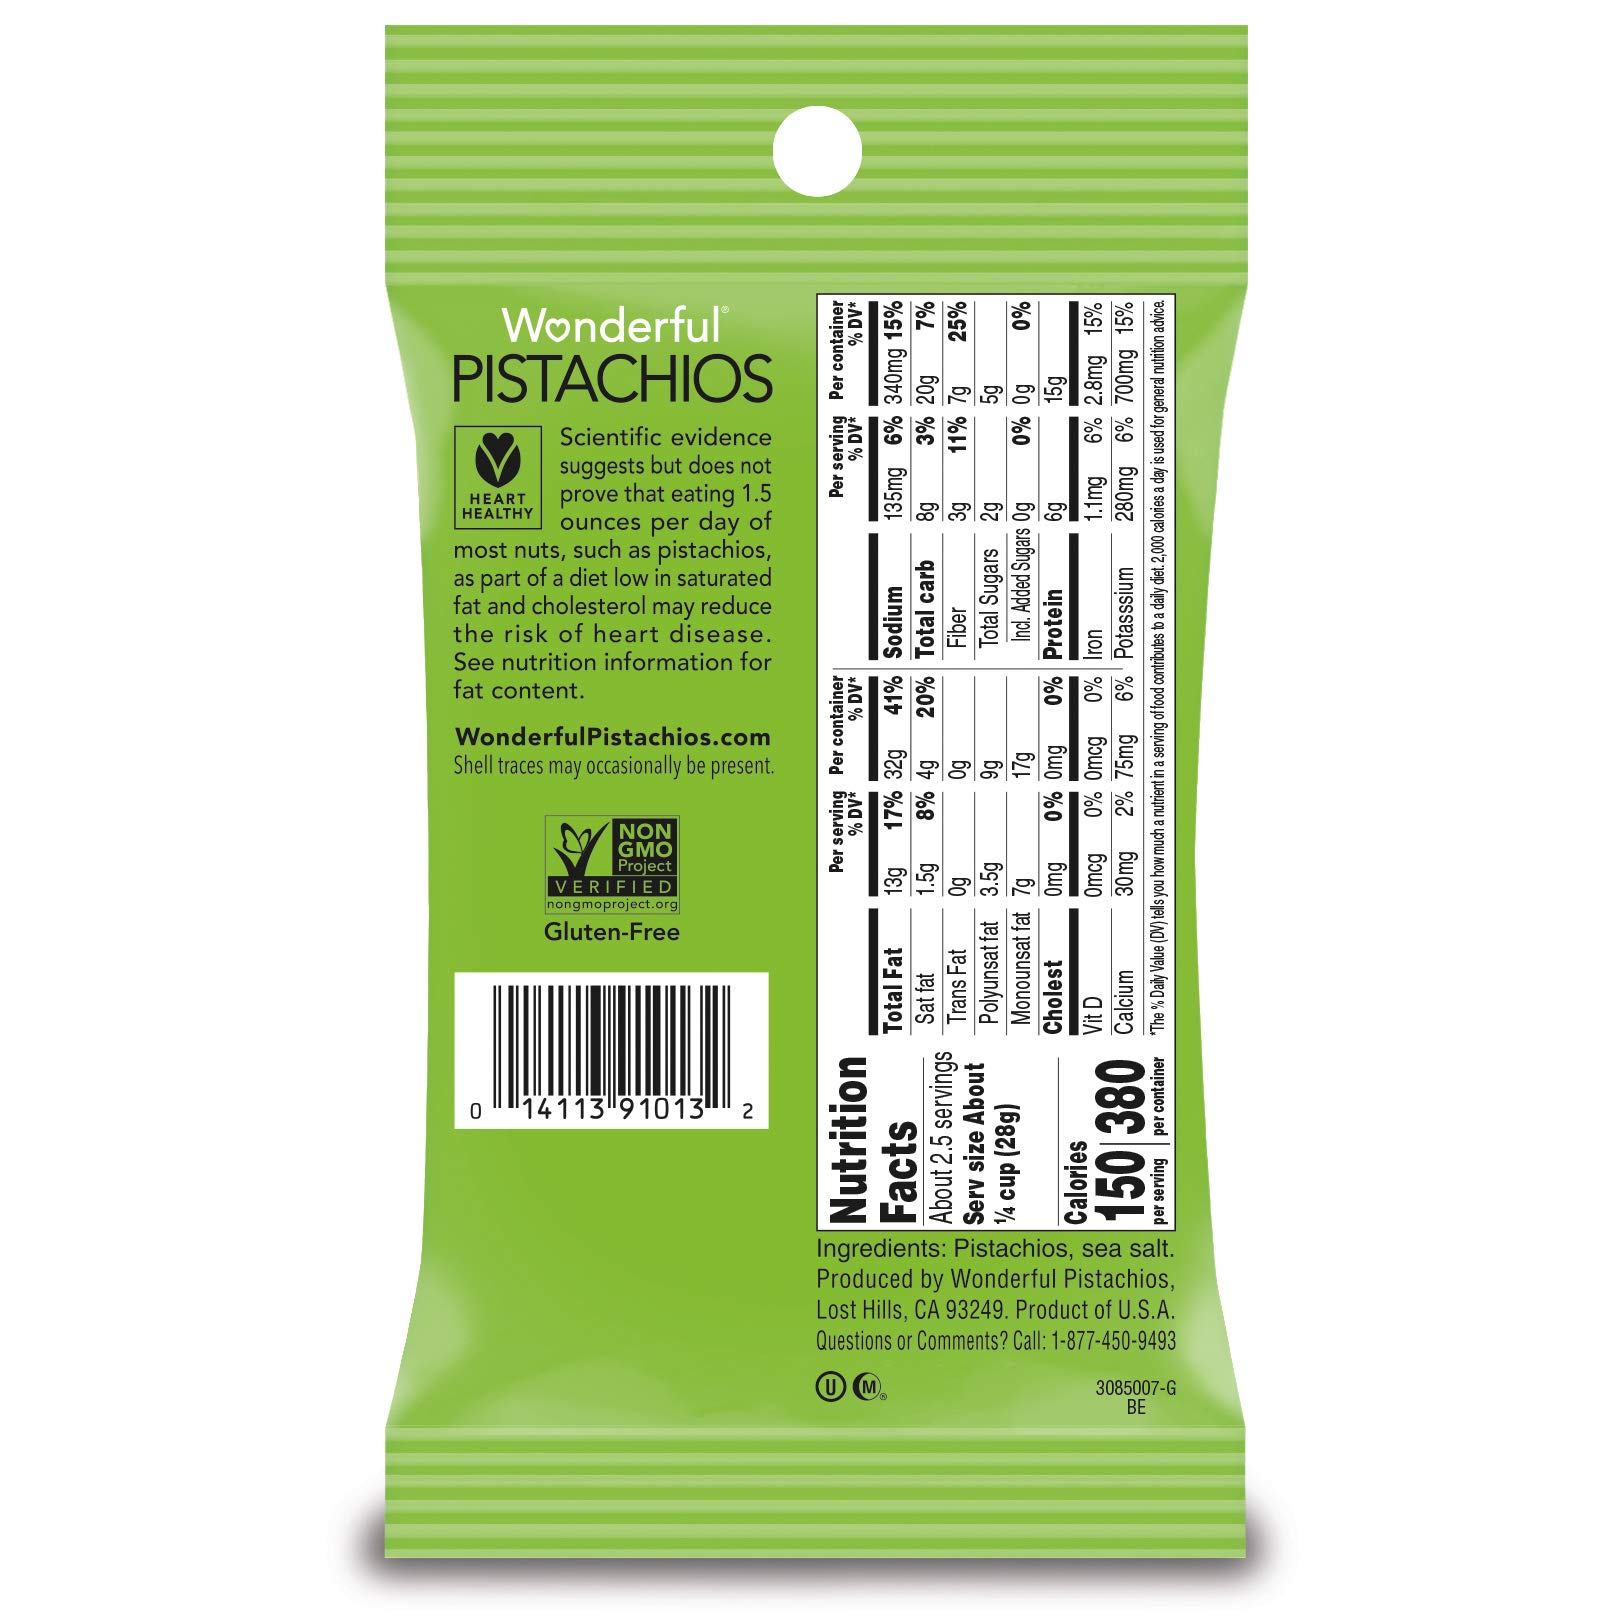 Wonderful Pistachios, No-Shell, Roasted and Salted, 2.5 Ounce Bag (Pack of 8) by Wonderful Pistachios & Almonds (Image #6)